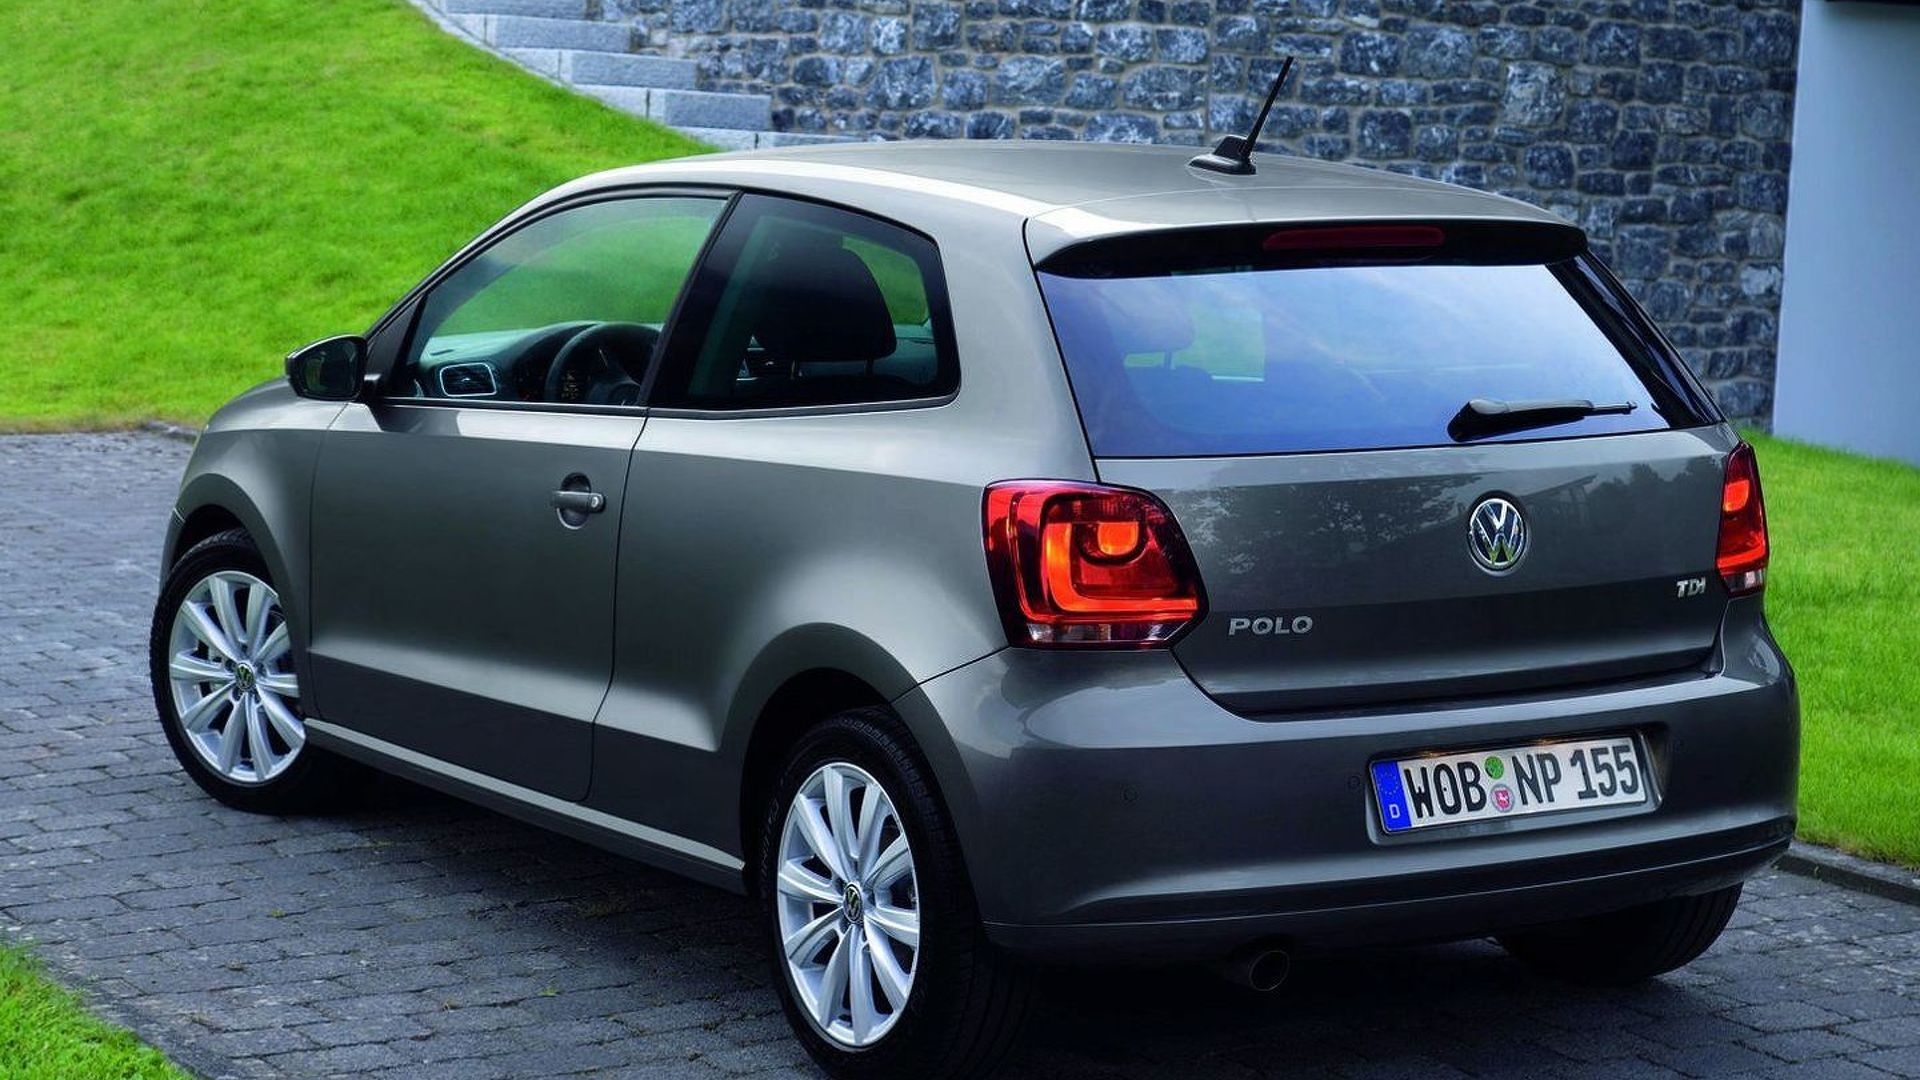 volkswagen polo wins 2010 world car of the year award. Black Bedroom Furniture Sets. Home Design Ideas